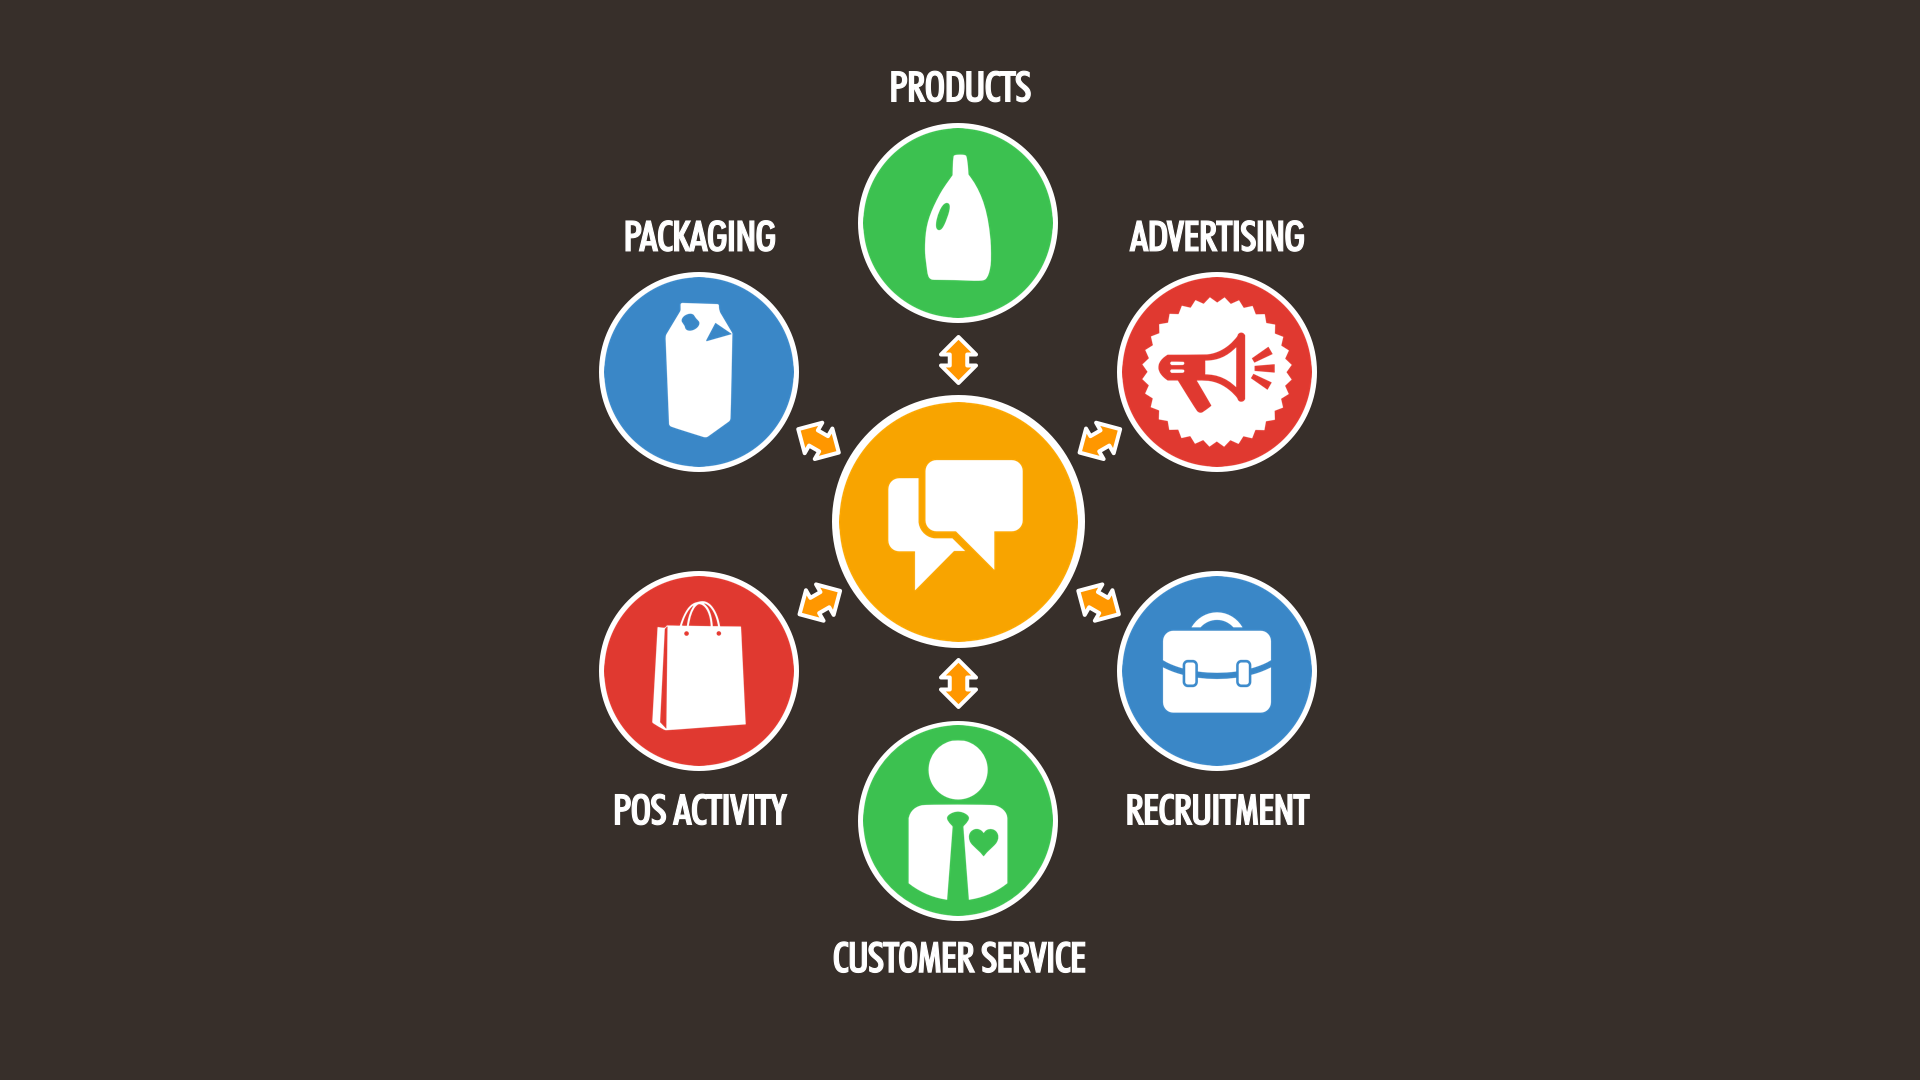 Using Every Element of the Marketing Mix to Add Value